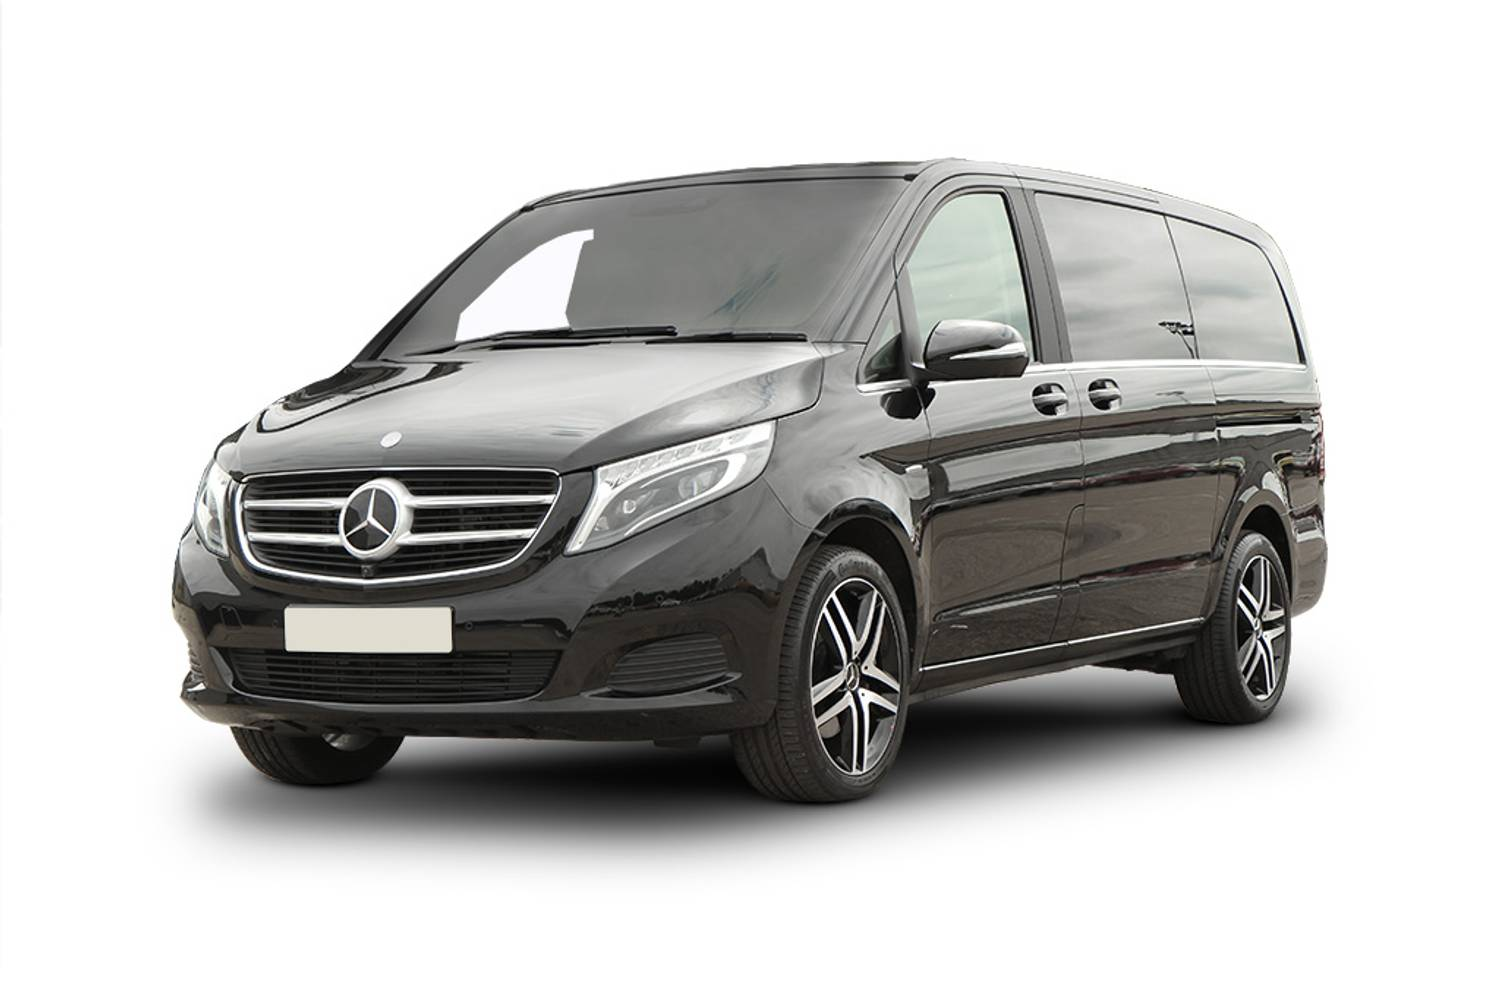 new mercedes benz v class diesel estate v250 d amg line 5 door auto long 2016 for sale. Black Bedroom Furniture Sets. Home Design Ideas